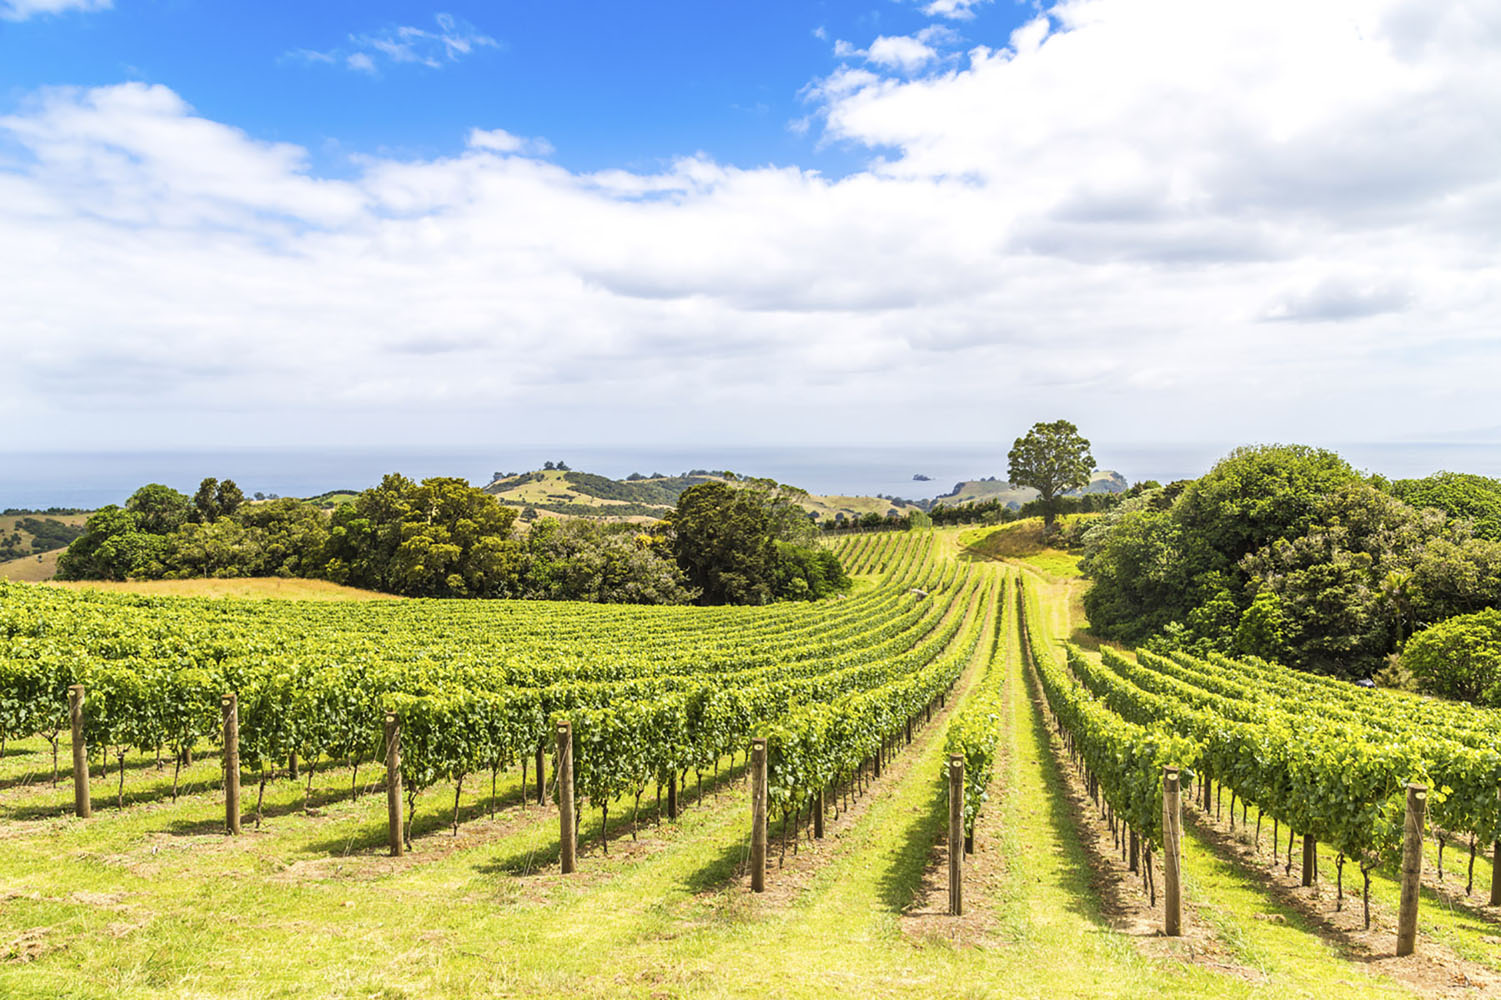 Visiting vineyards and tasting wine is a must when in New Zealand.